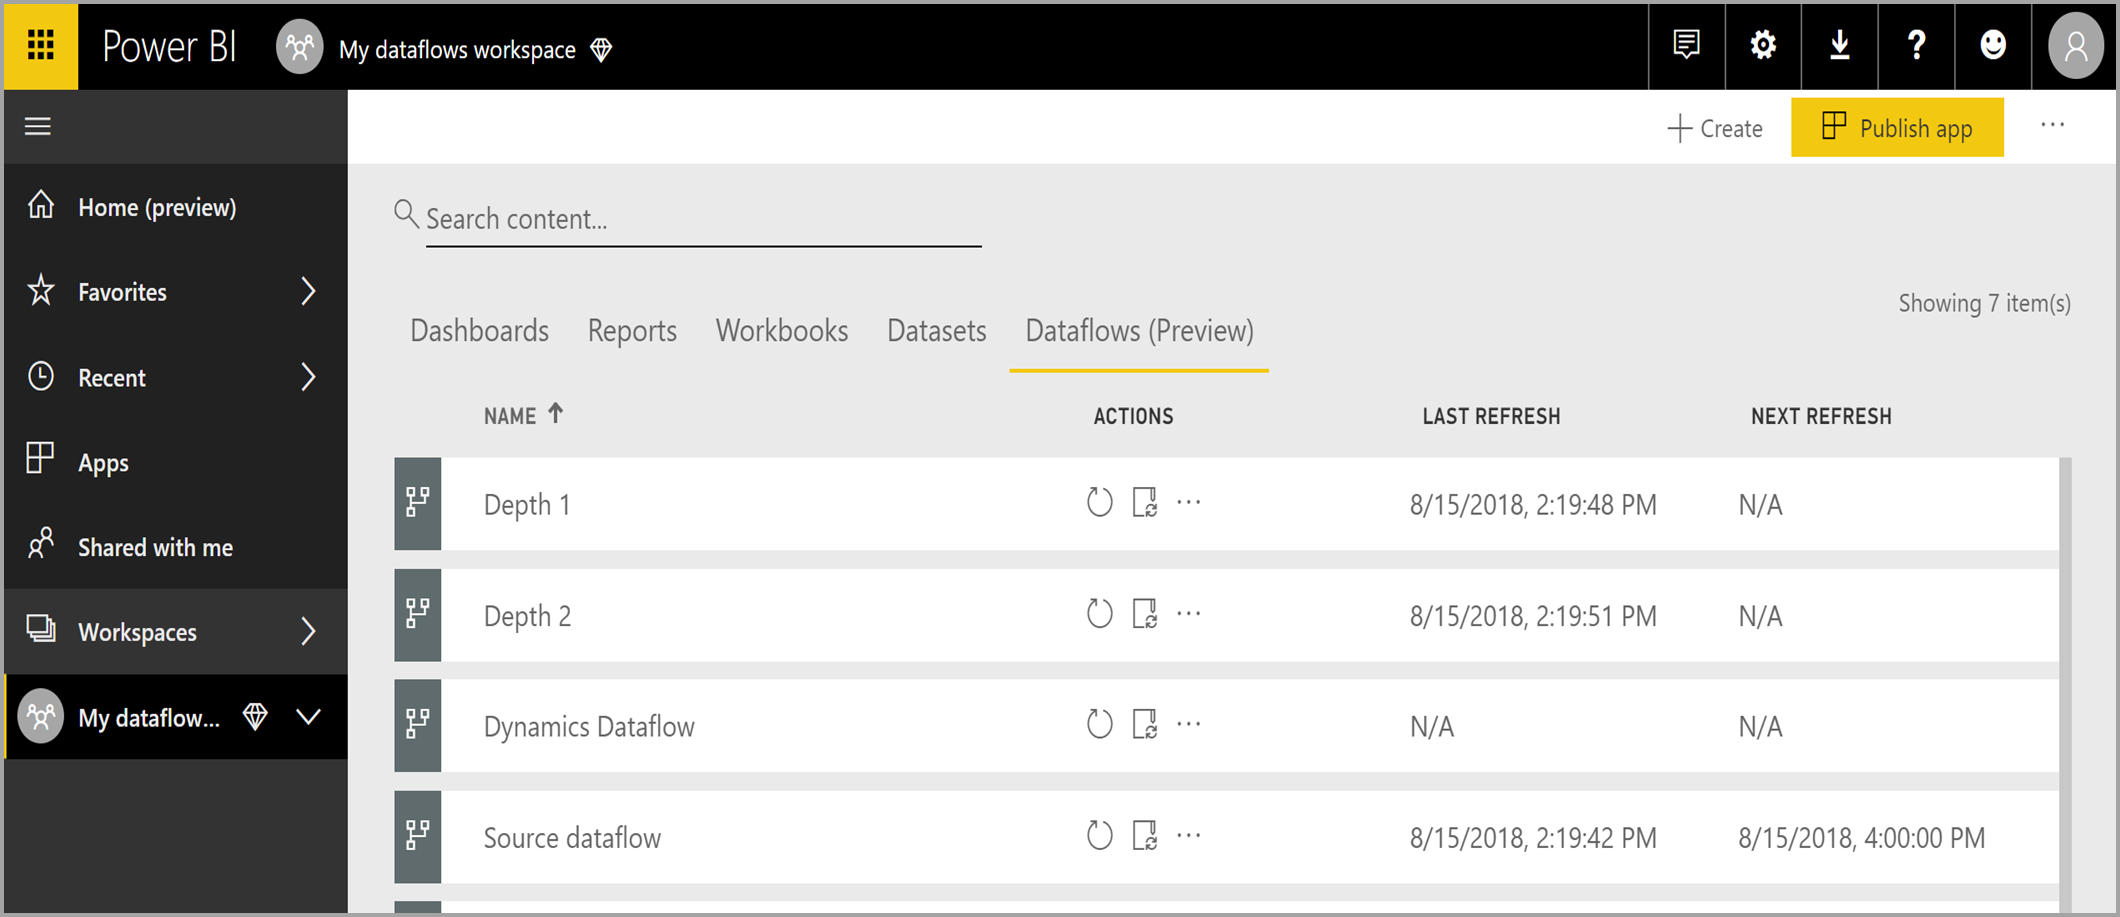 Manage dataflows in the Power BI service